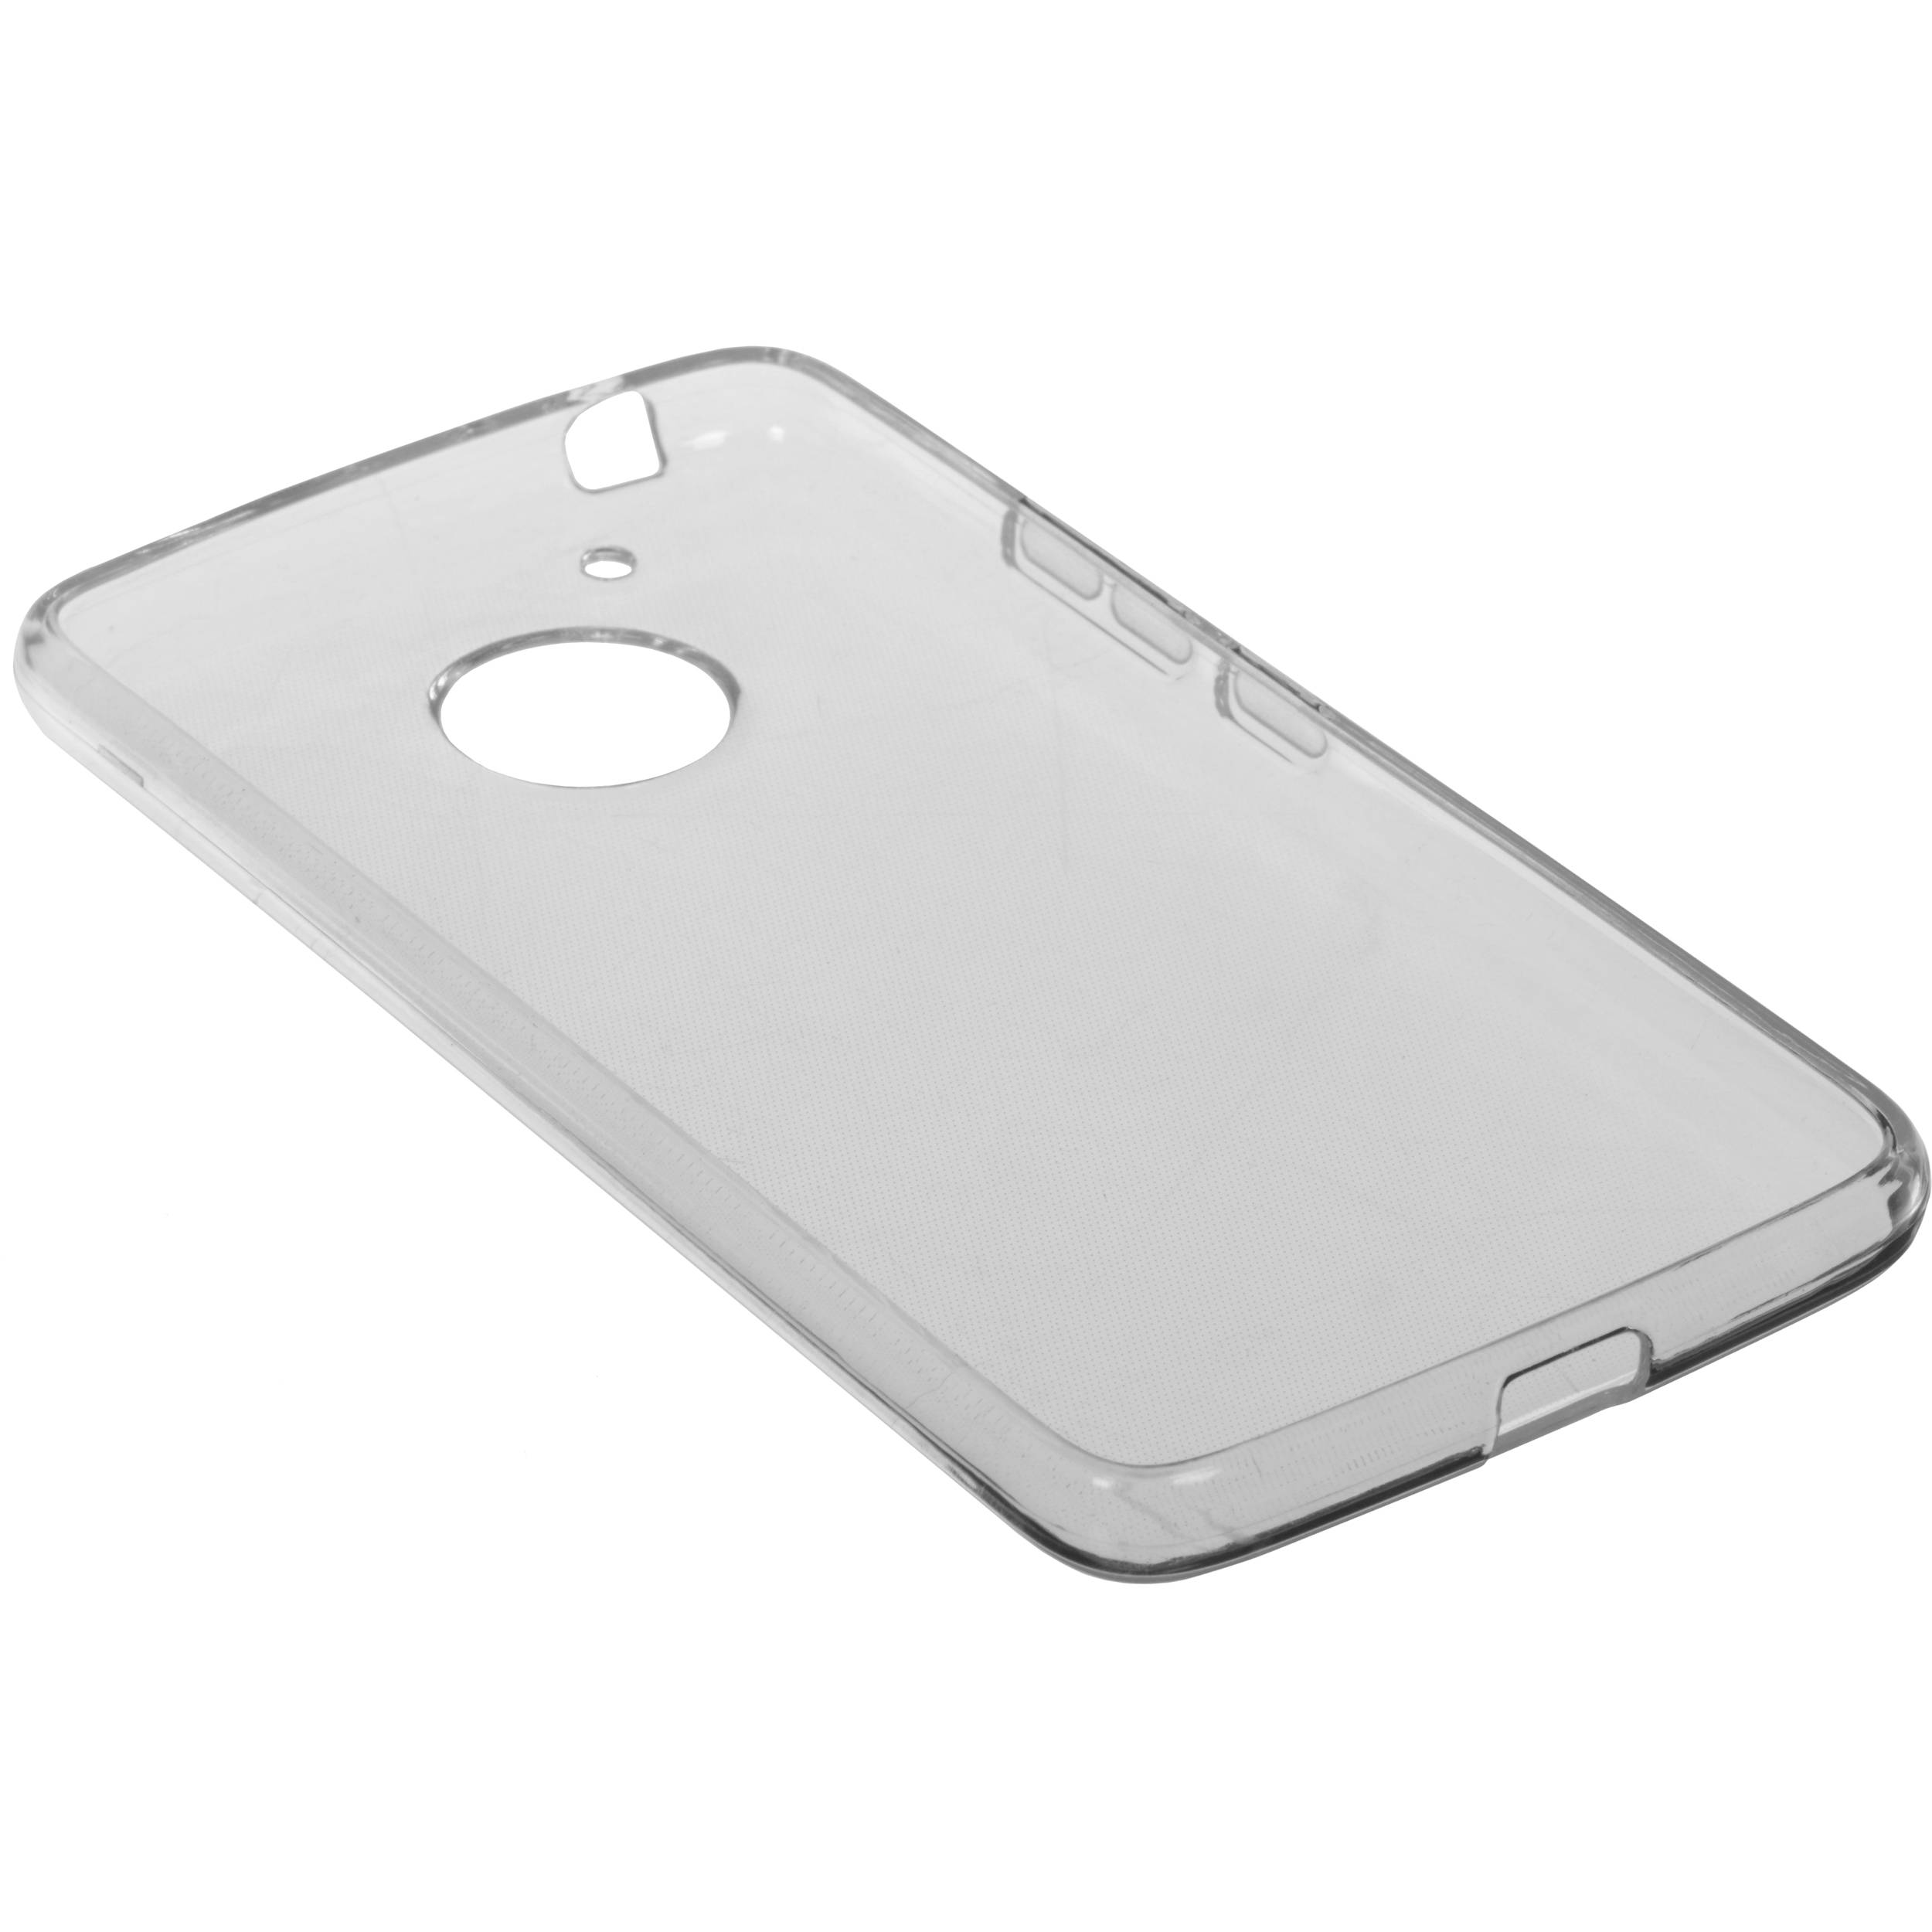 new product d0eef 6c859 BlooPro Silicone Protective Case for Motorola Moto G5 Plus (Clear)